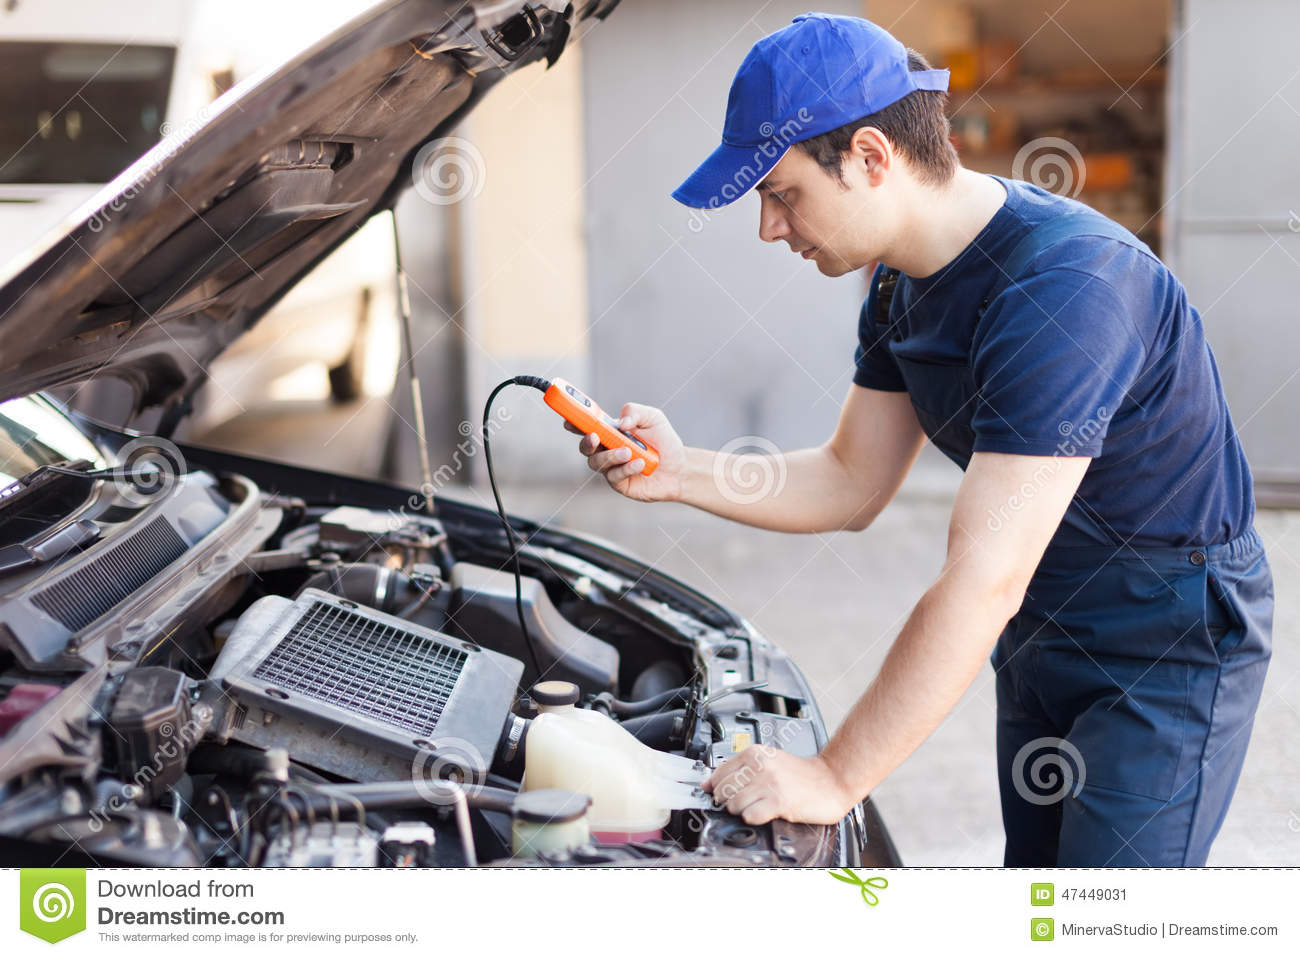 Mechanic using a tester on a car engine